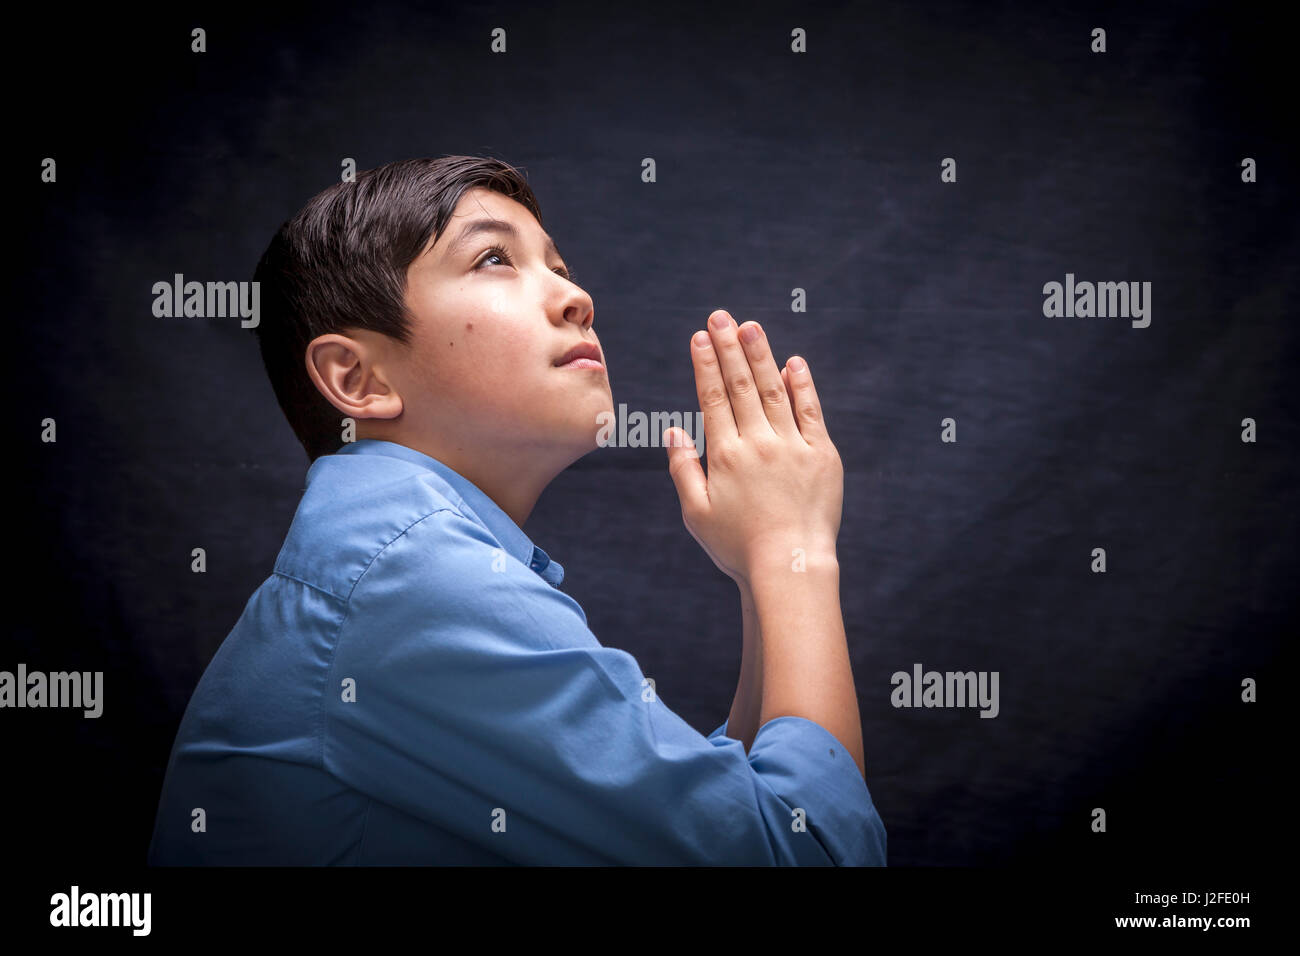 A young boy folds his hands and raises his head in prayer to God. - Stock Image